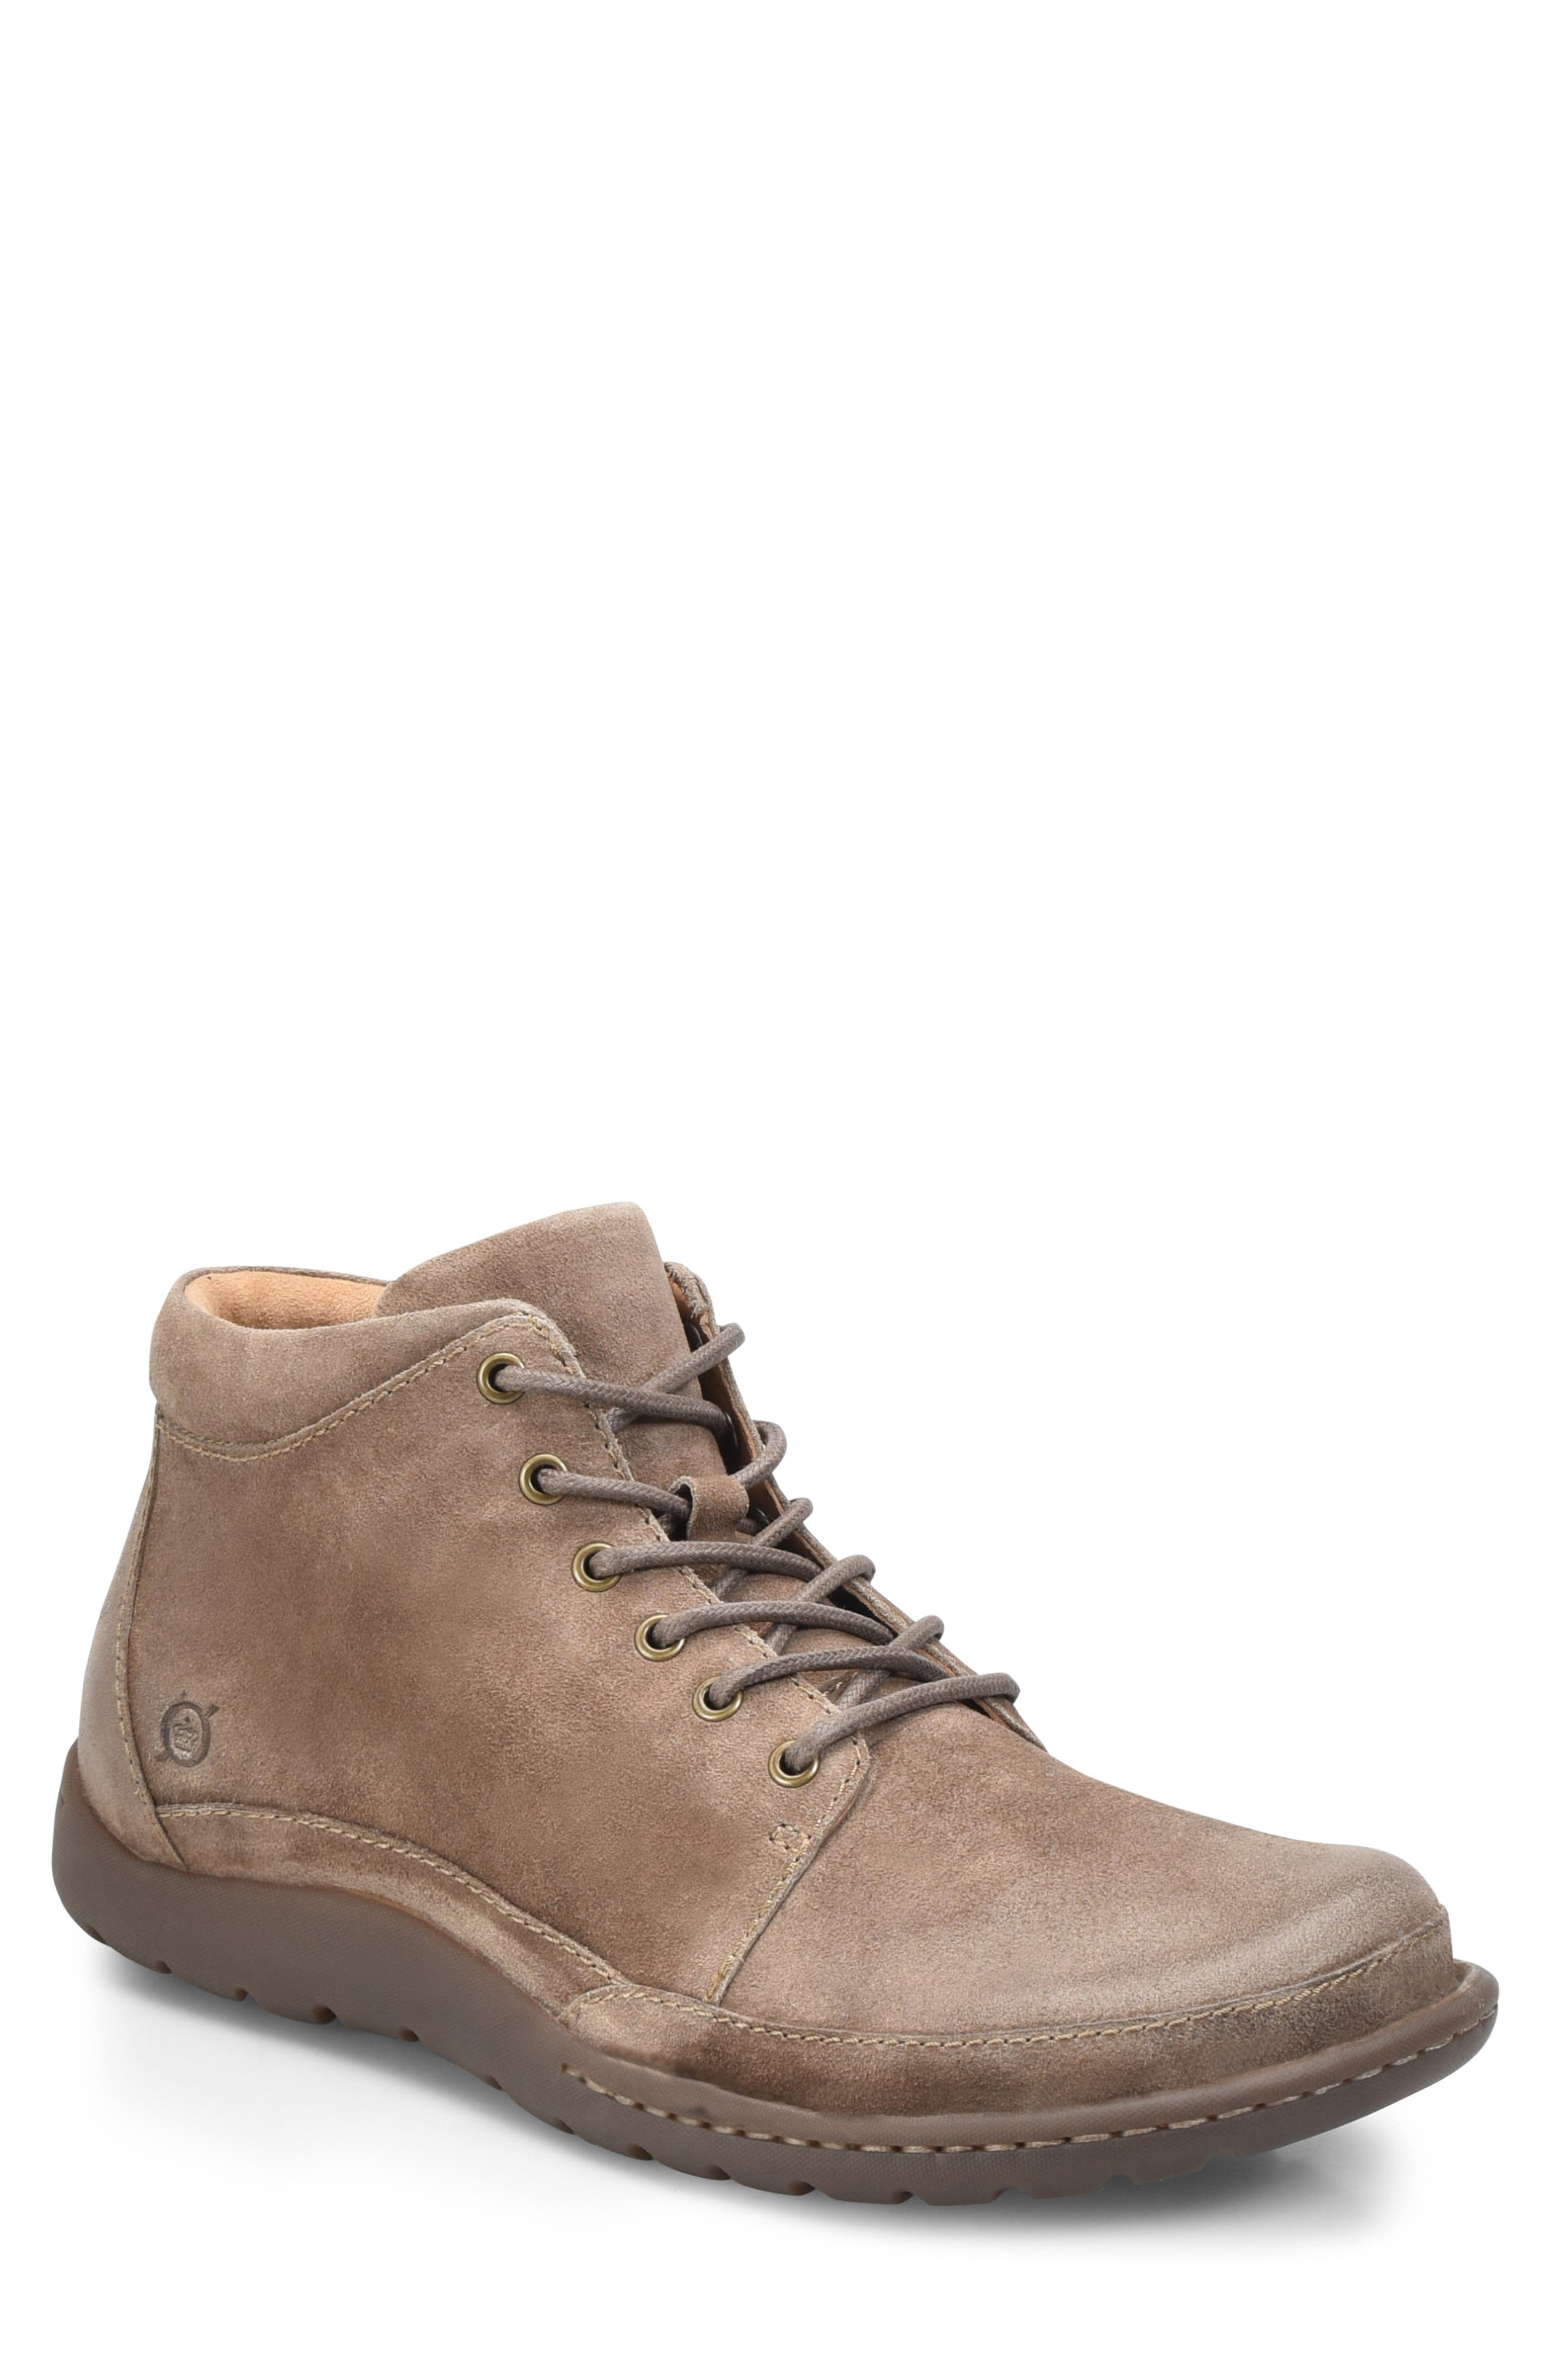 BØRN, Nigel Low Boot, Main thumbnail 1, color, TAUPE LEATHER